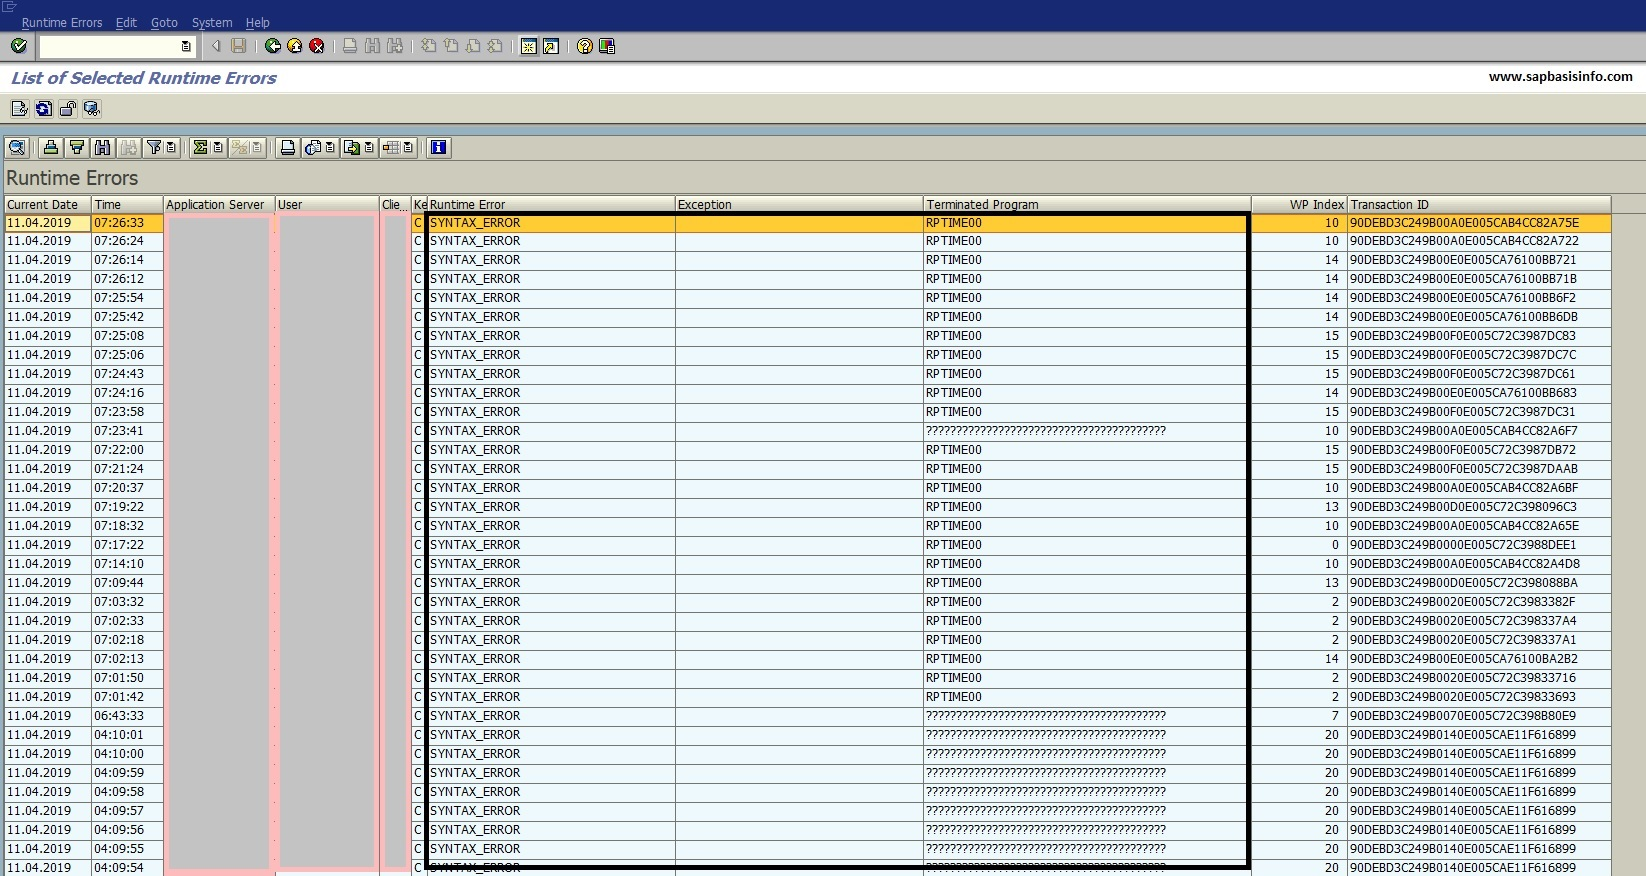 HCM Renewal 2.0 post Upgrade activity from HR-CEE Add-on Dumps for SAPLHRPL MP000800